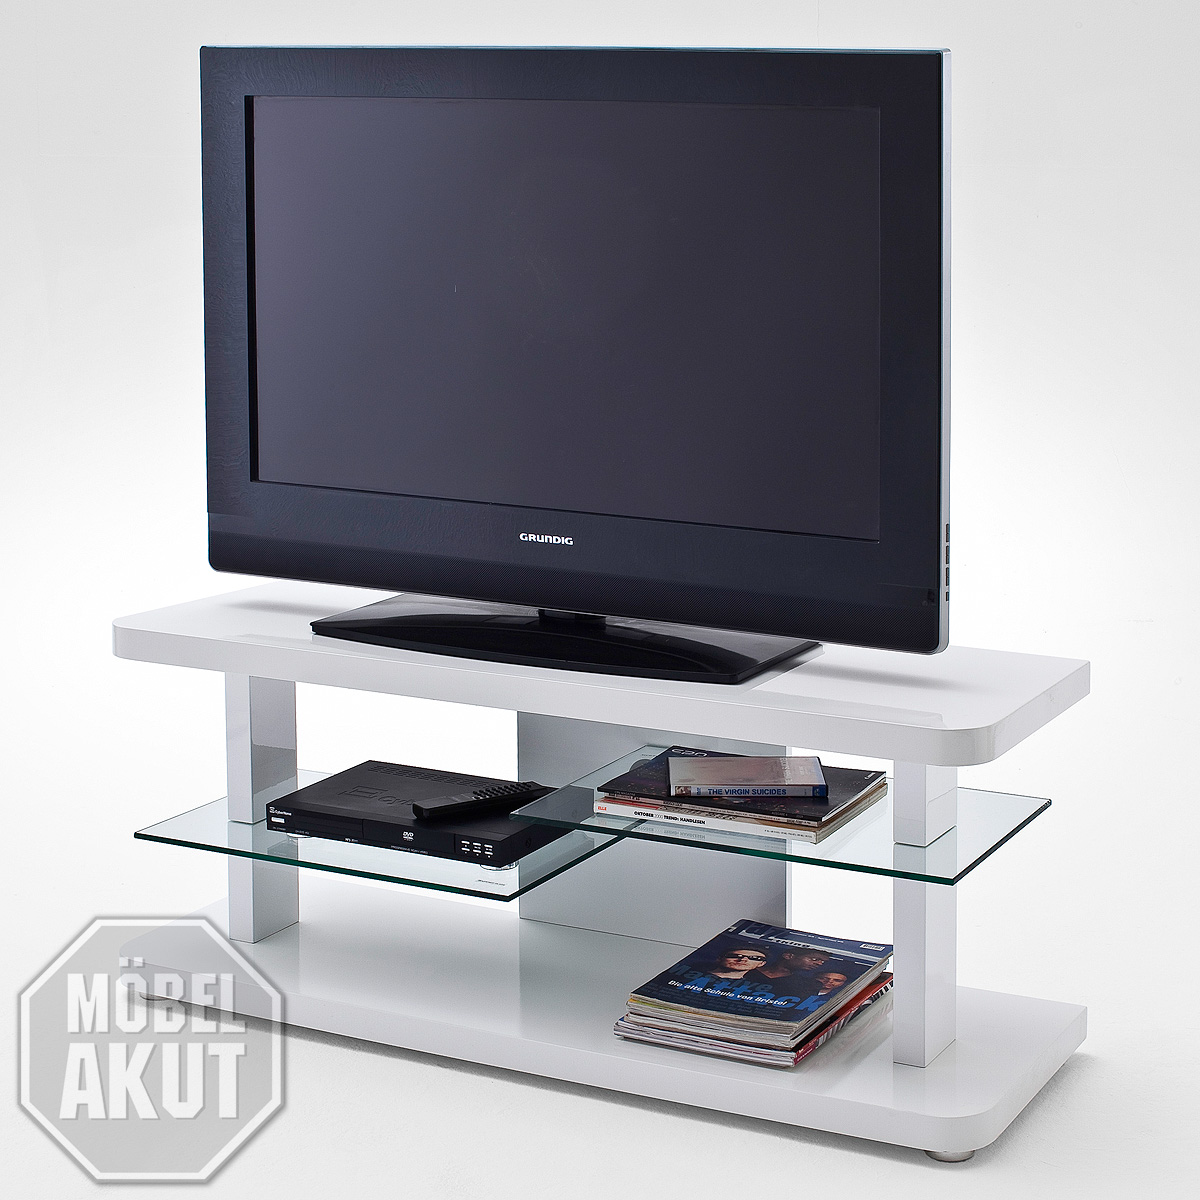 tv board cult lowboard tv unterschrank wei hochglanz lack und glas ebay. Black Bedroom Furniture Sets. Home Design Ideas